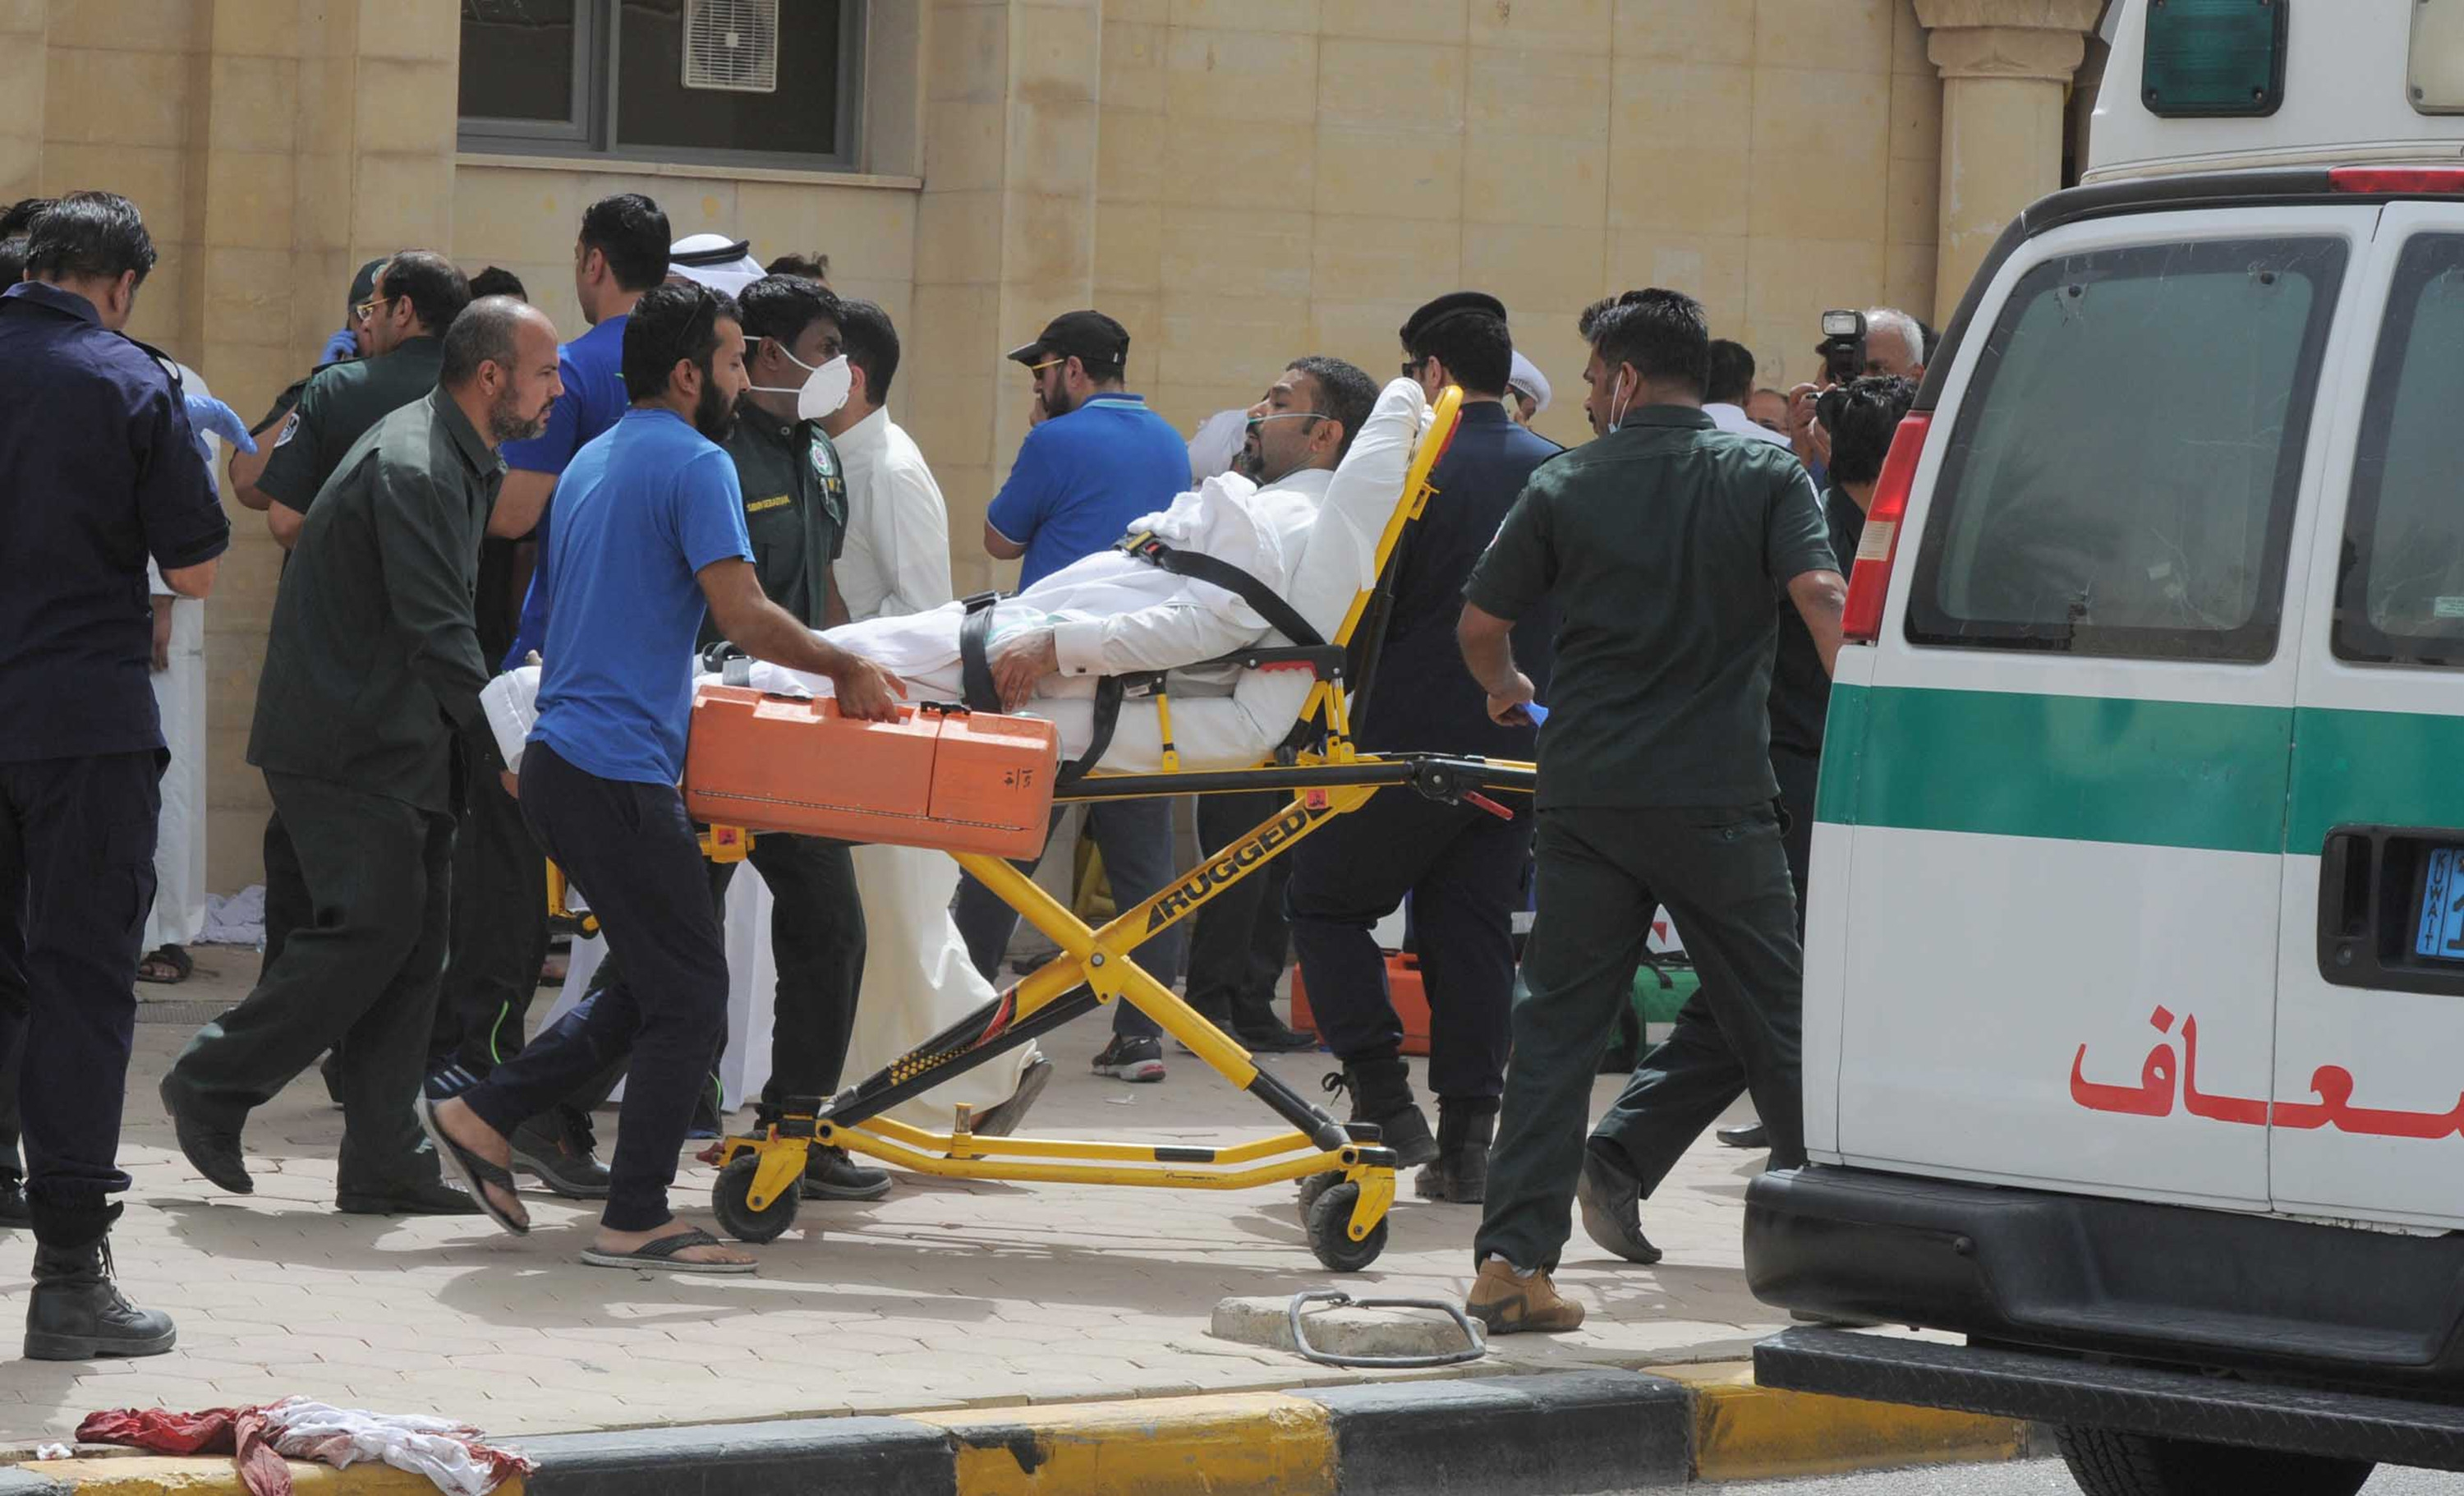 A wounded man is transferred outside the Imam Sadiq Mosque following a suicide bomb blast on June 26, 2015 in Kuwait City, the capital of Kuwait. (TNS)